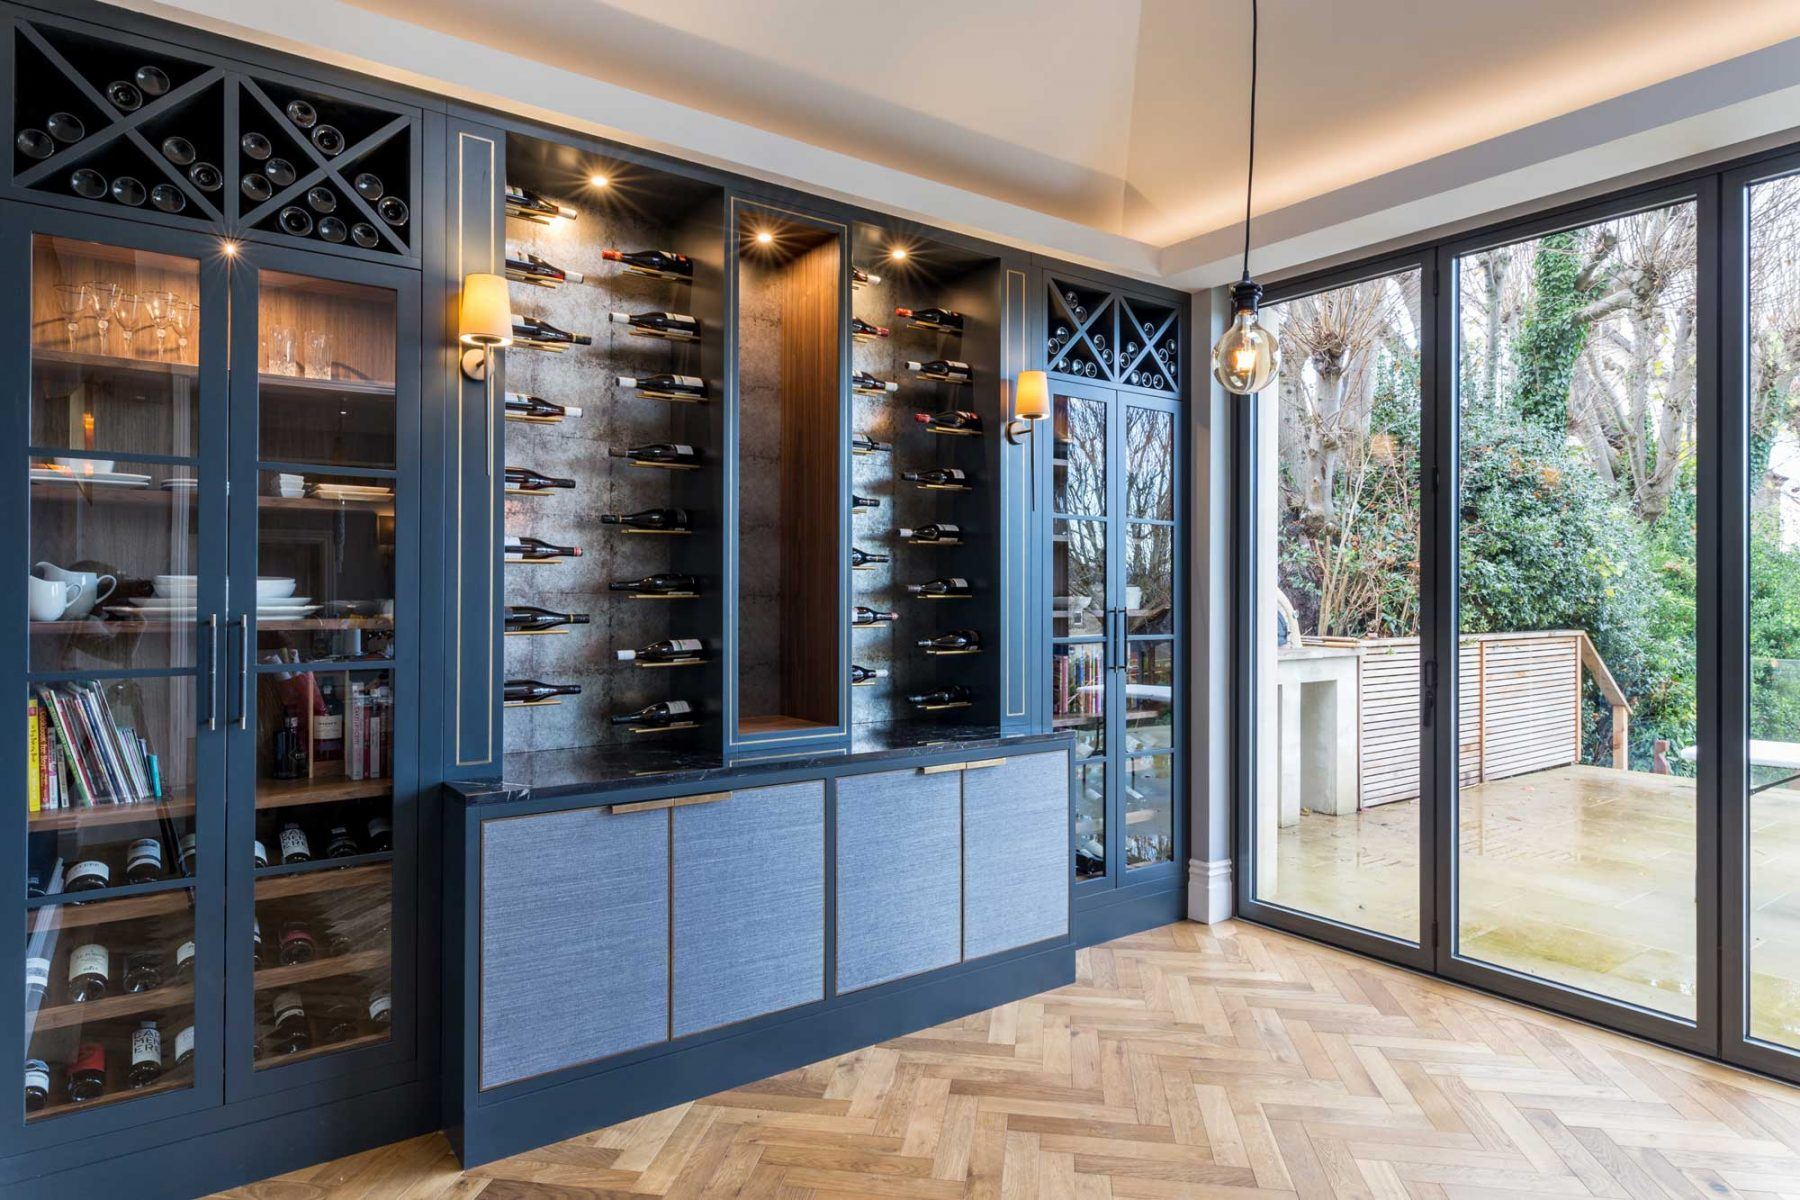 Bespoke wine wall designed by Mia Marquez